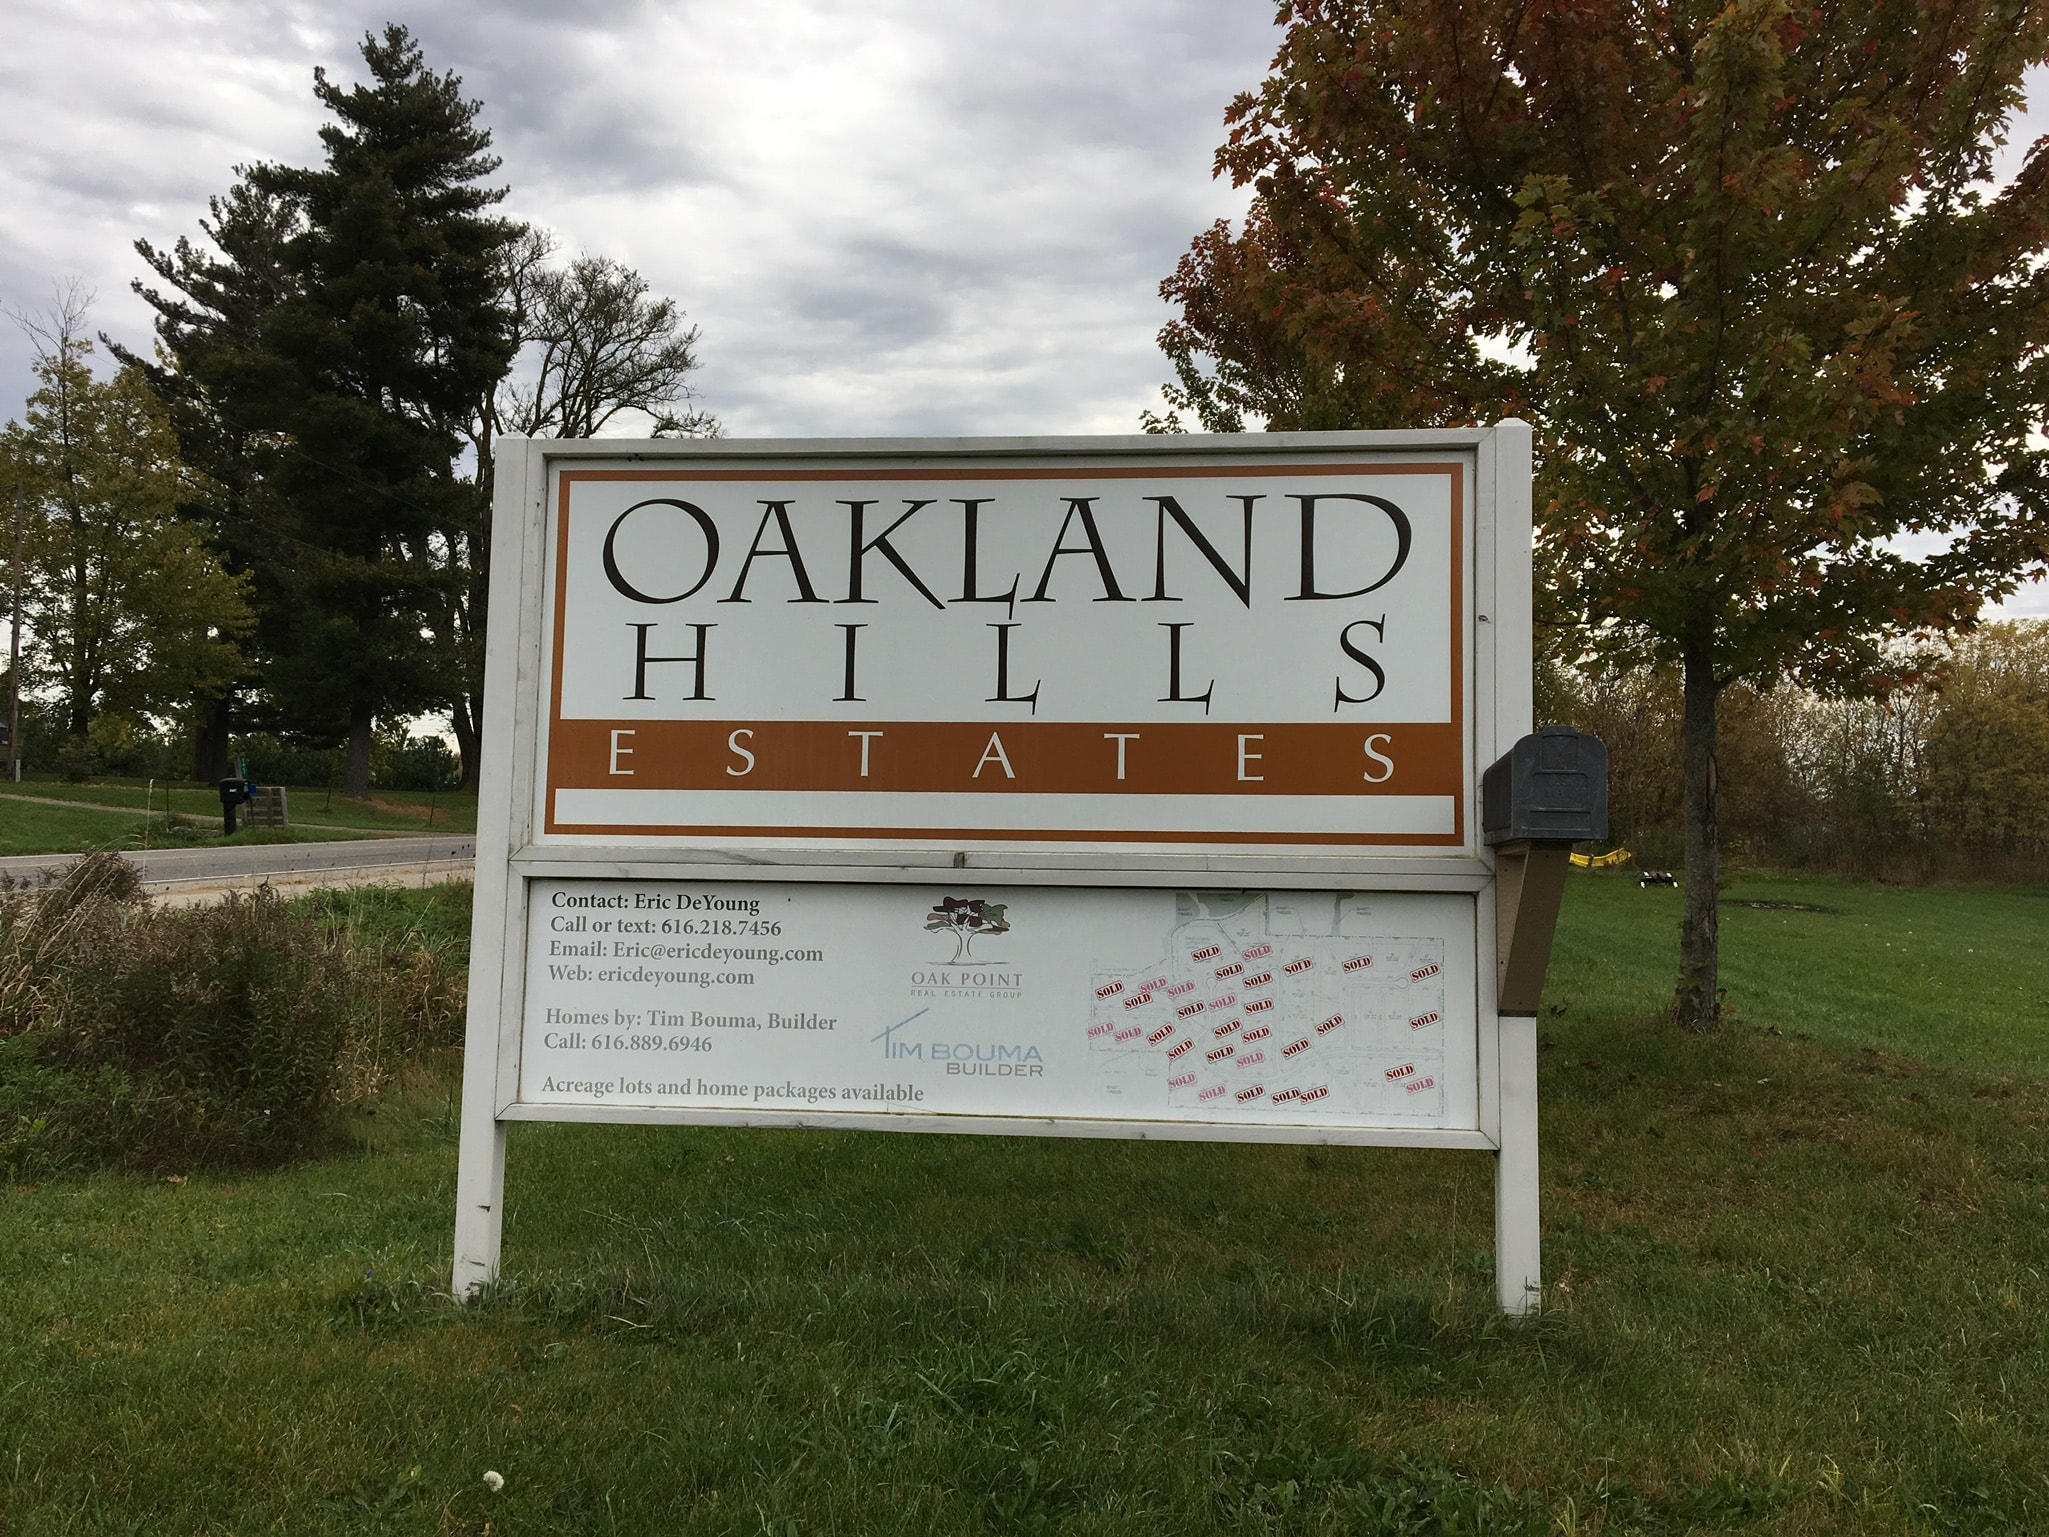 Entrance Sign of Oakland Hills Estates